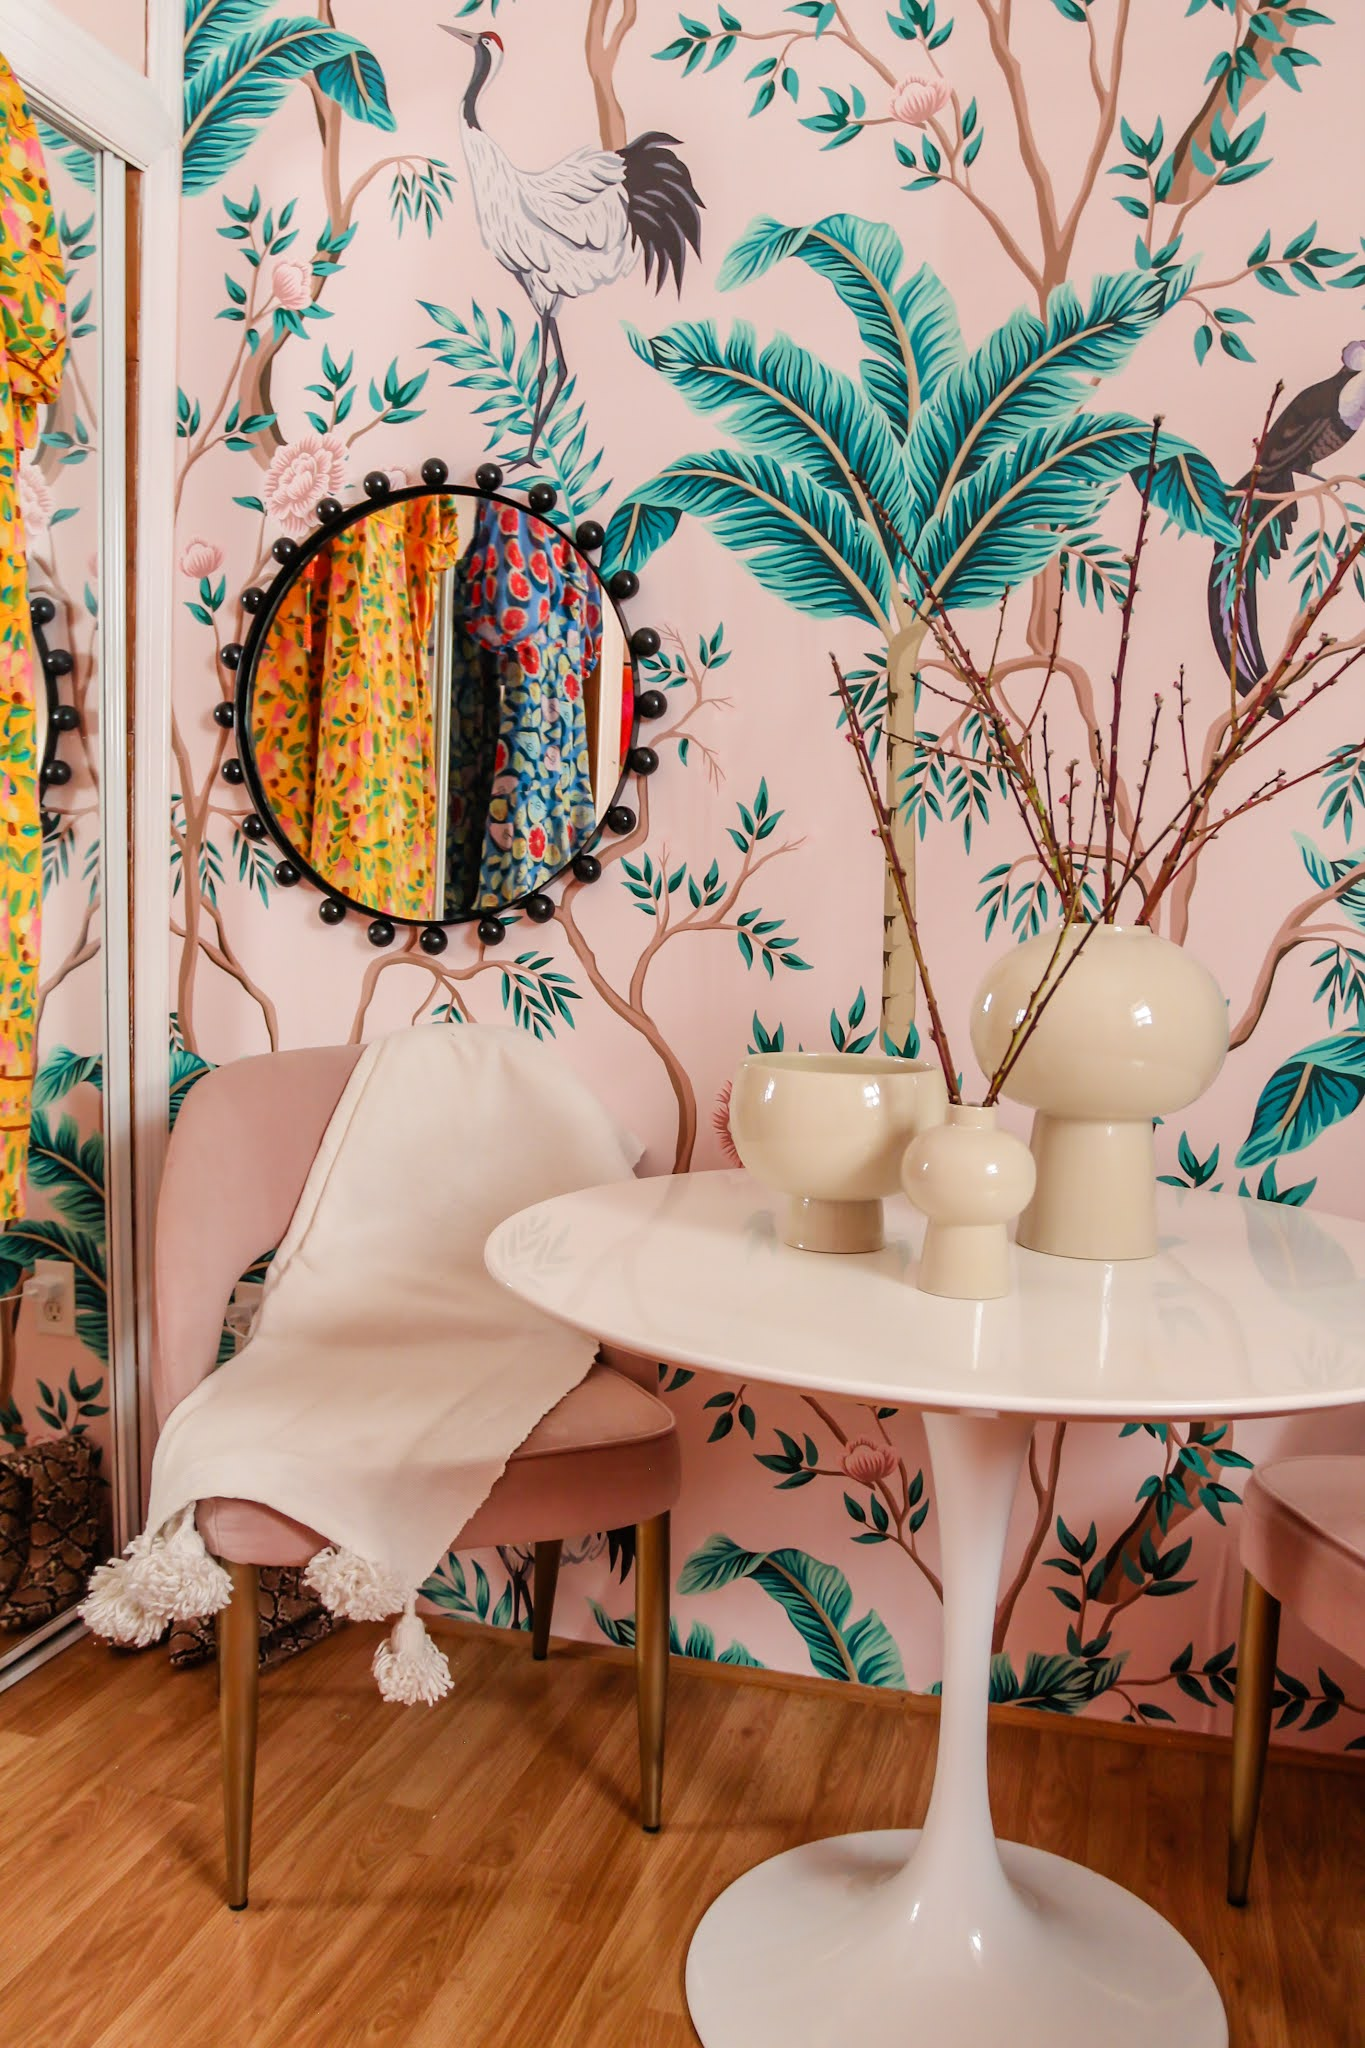 Chinoiserie wallpaper // home office decor  // how to brighten room with a mural // how to brighten room with wallpaper // office inspiration // boho office ideas // Chinoiserie office // pink Chinoiserie // pink tropical office inspo // removable murals // limitless walls mural review // rust and pink decor // boho Chinoiserie decor // pink and burnt orange  decor inspo // tropical bird wallpaper // tropical birds mural // boho gallery wall // Frida gallery wall // Frida Kahlo print // boho prints // boho office decor // light pink tropical office // light pink room // Clare baby soft // small office spaces // wallpaper ideas // boho home office // Clare paint baby soft // pink decor // maximalist rooms // decor ideas // pink decor ideas